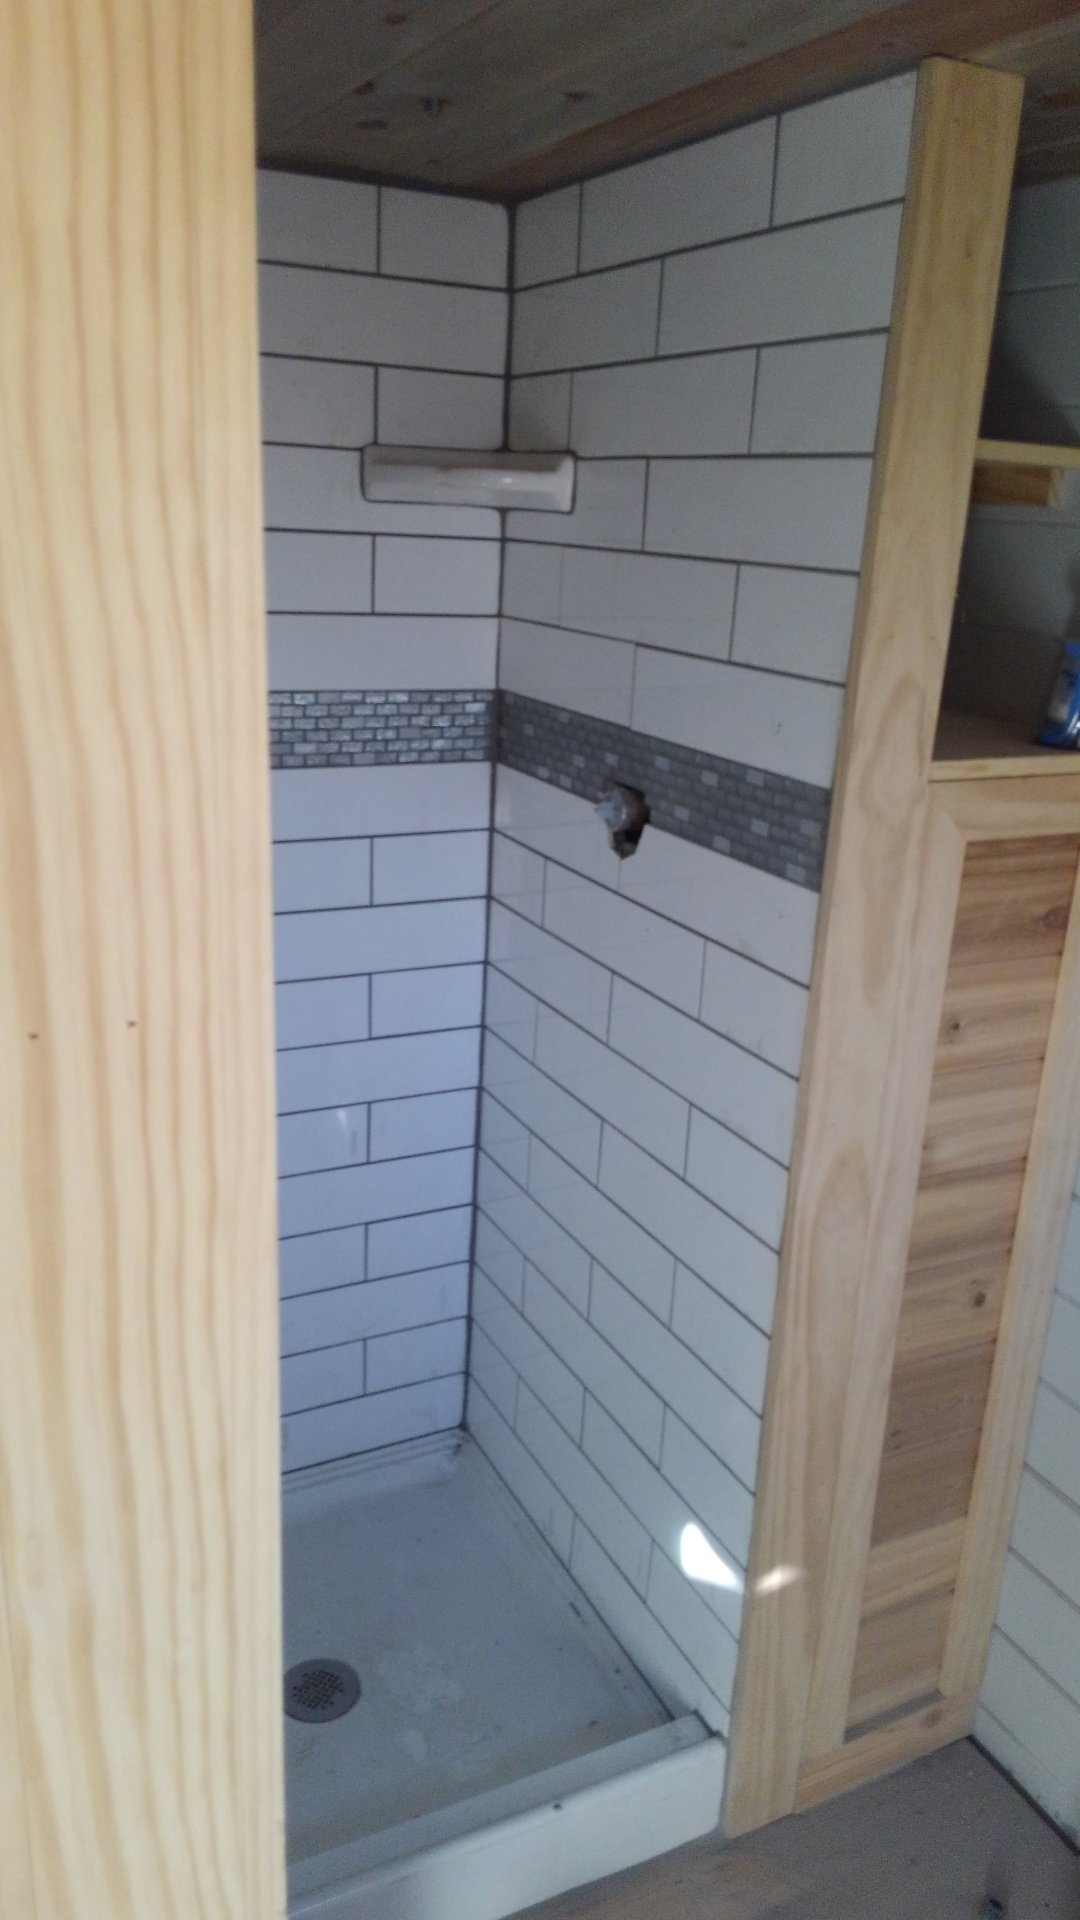 Shower tile and grout completed